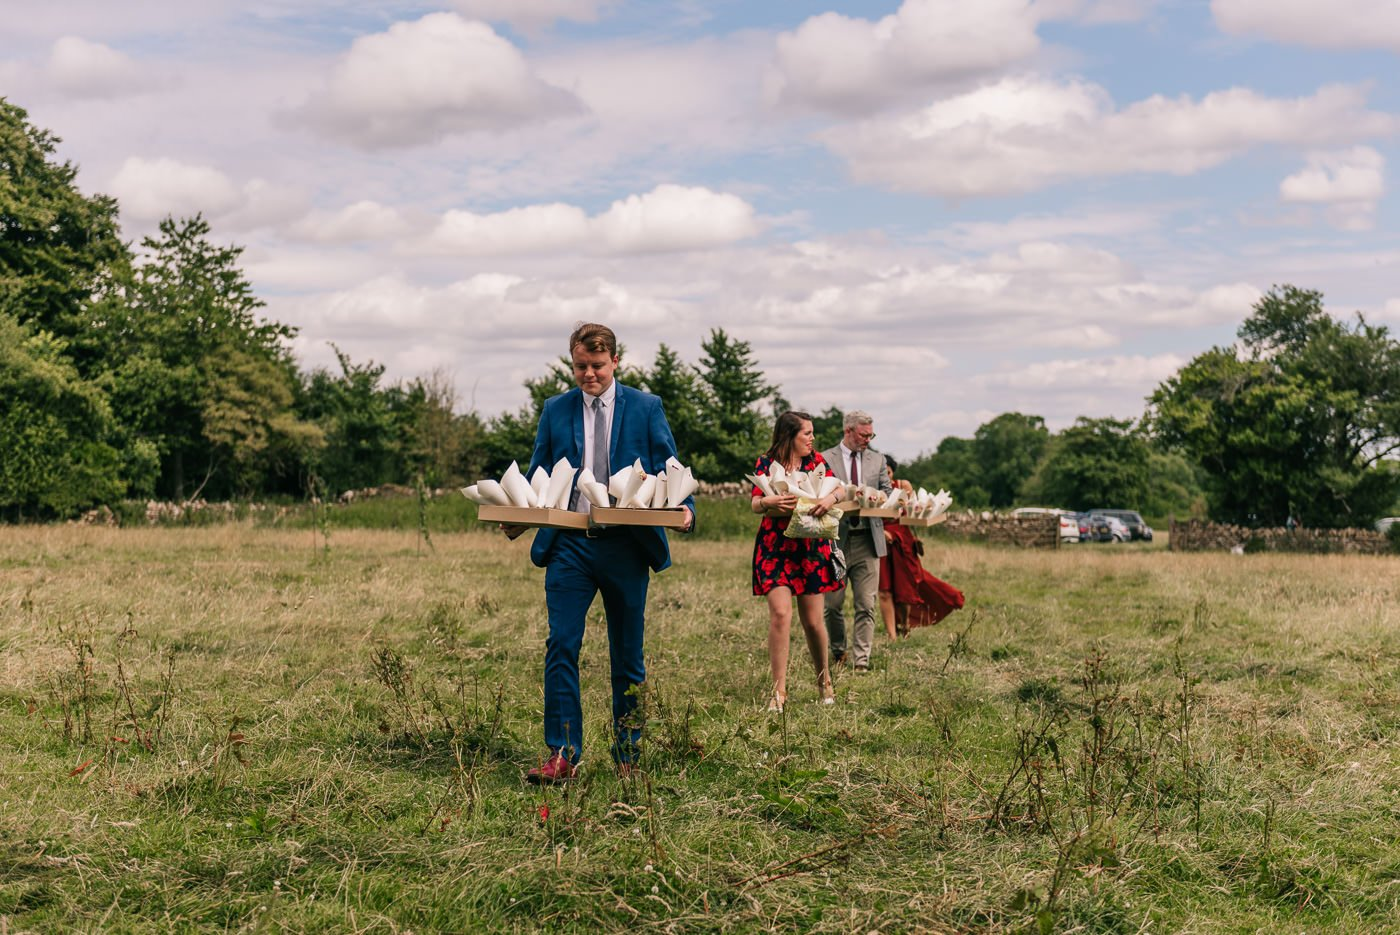 guests carrying confetti across a field humanist outdoor wedding